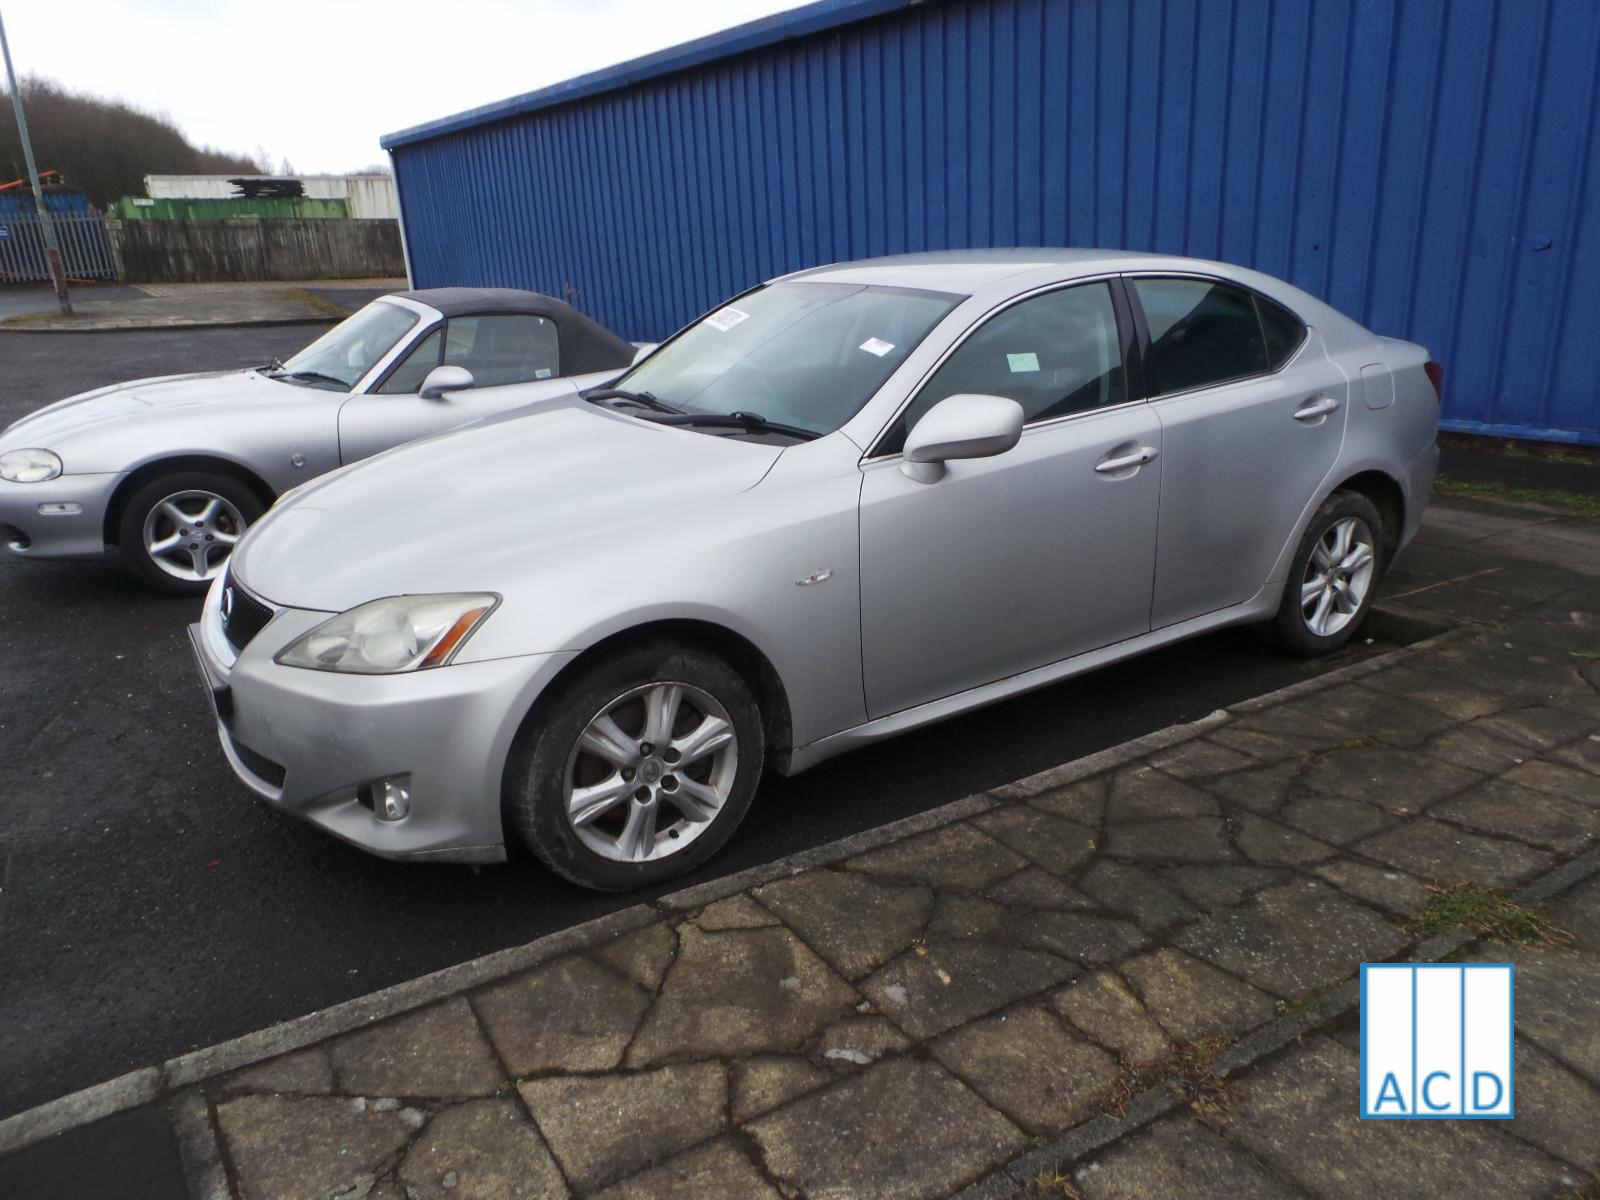 Lexus Breakers sell Lexus IS220D parts